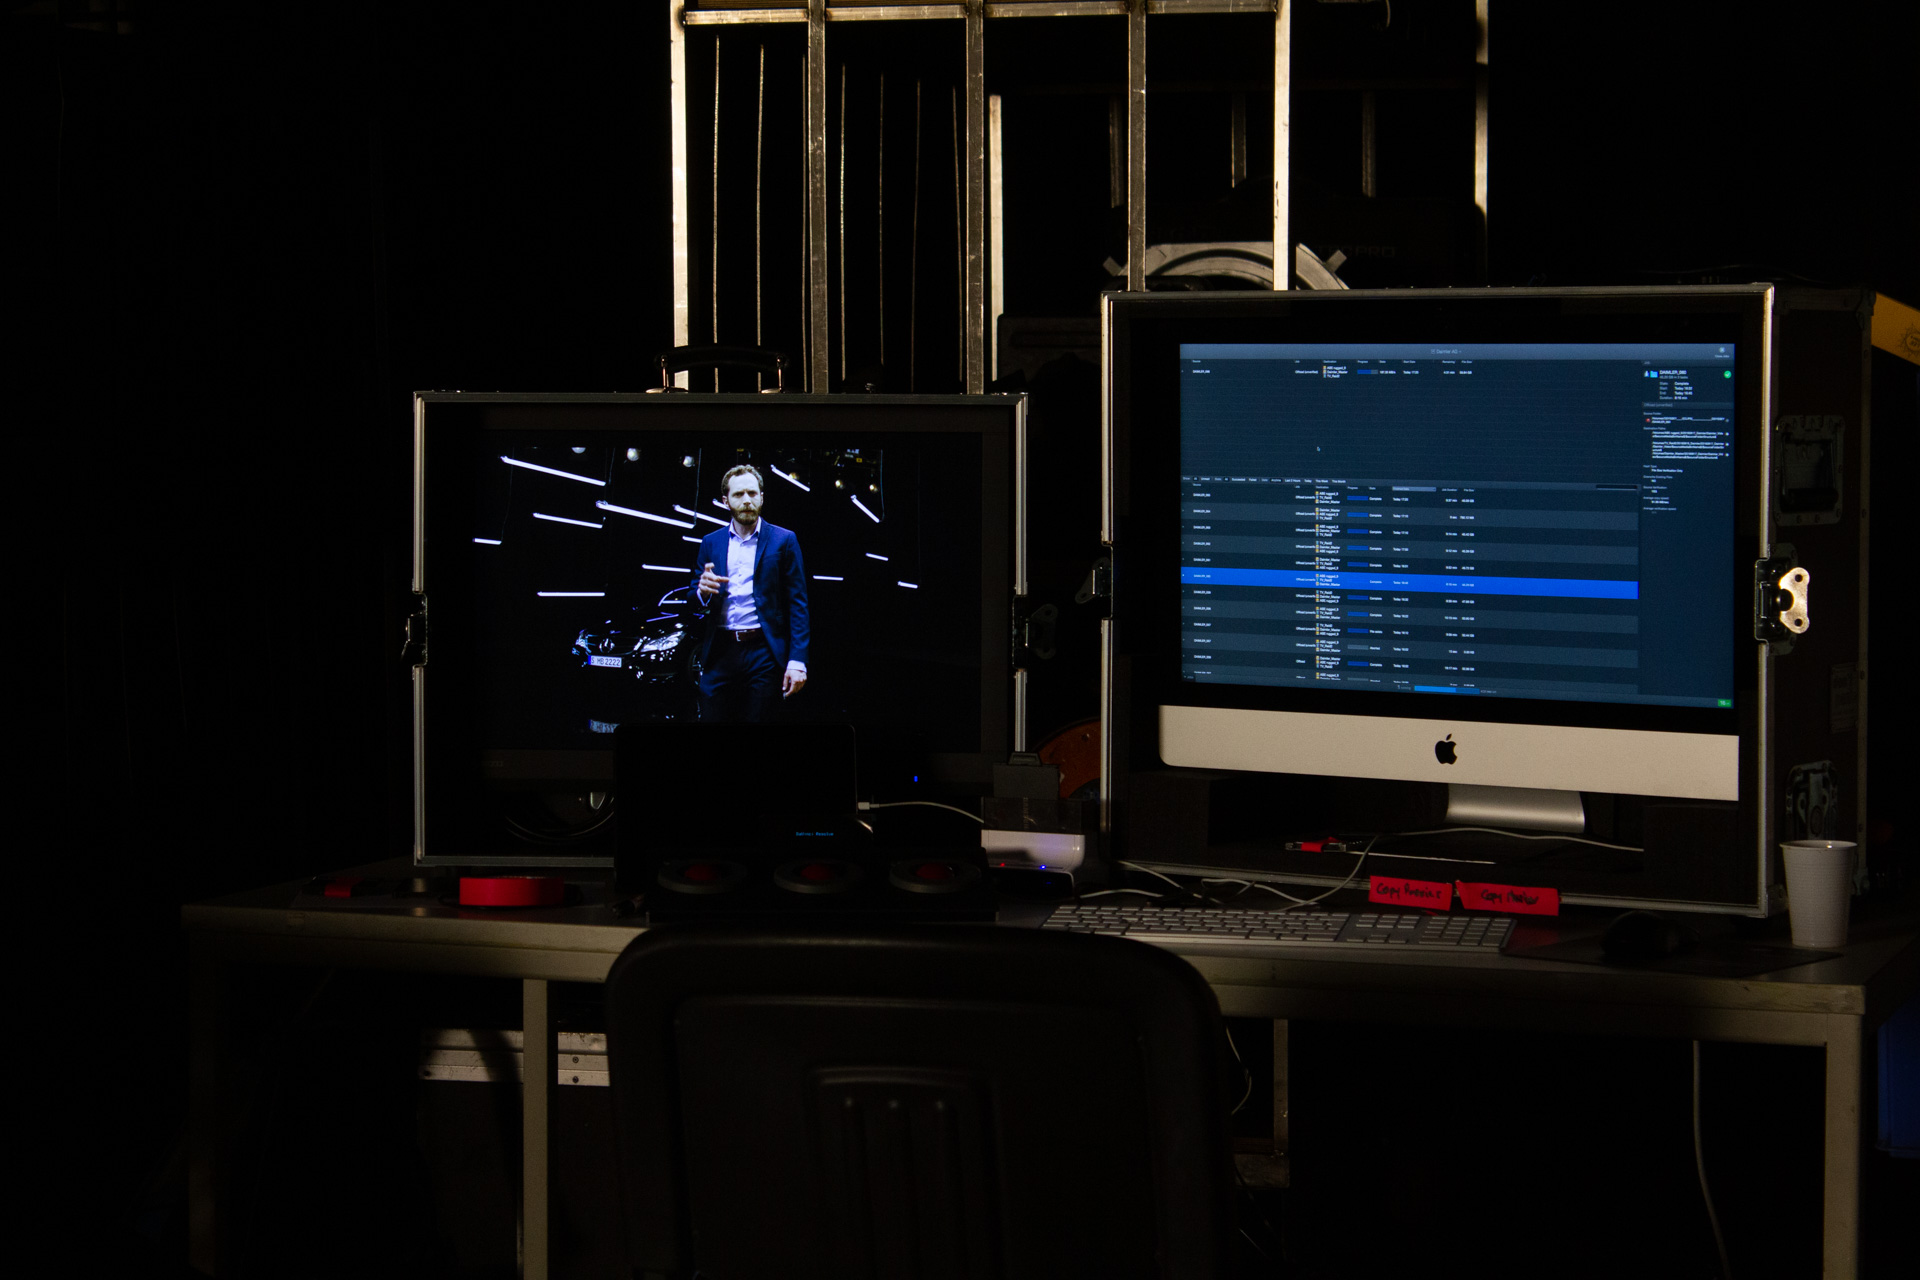 Preview monitors displaying the scene